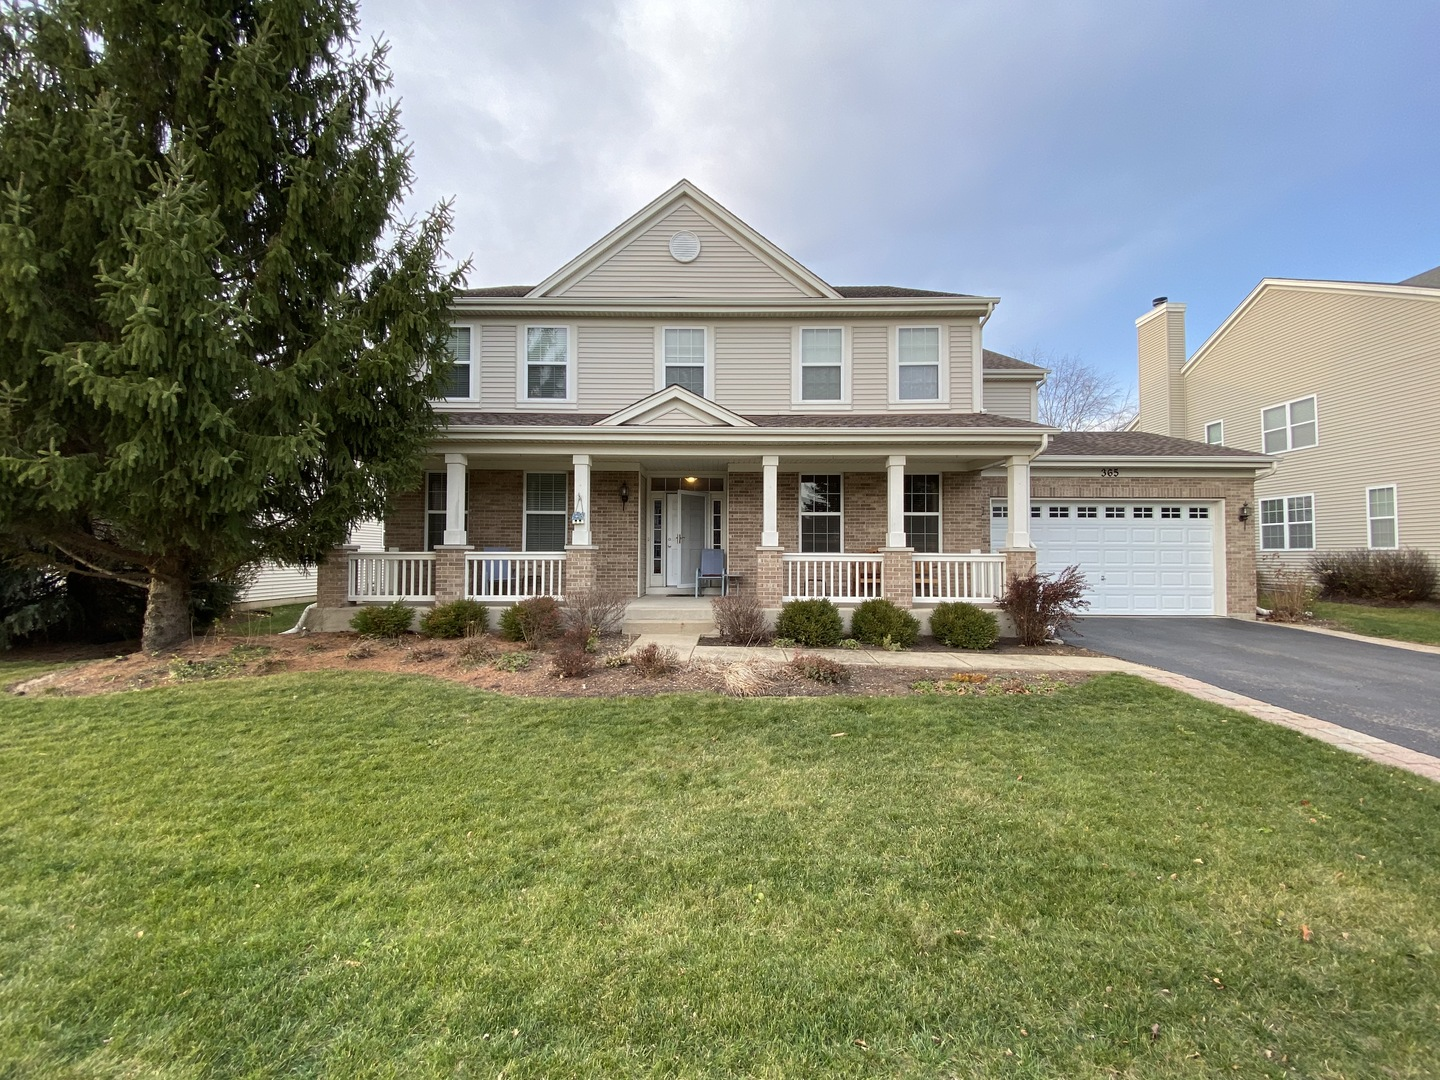 Photo for 365 Merion Drive, Cary, IL 60013 (MLS # 10937005)